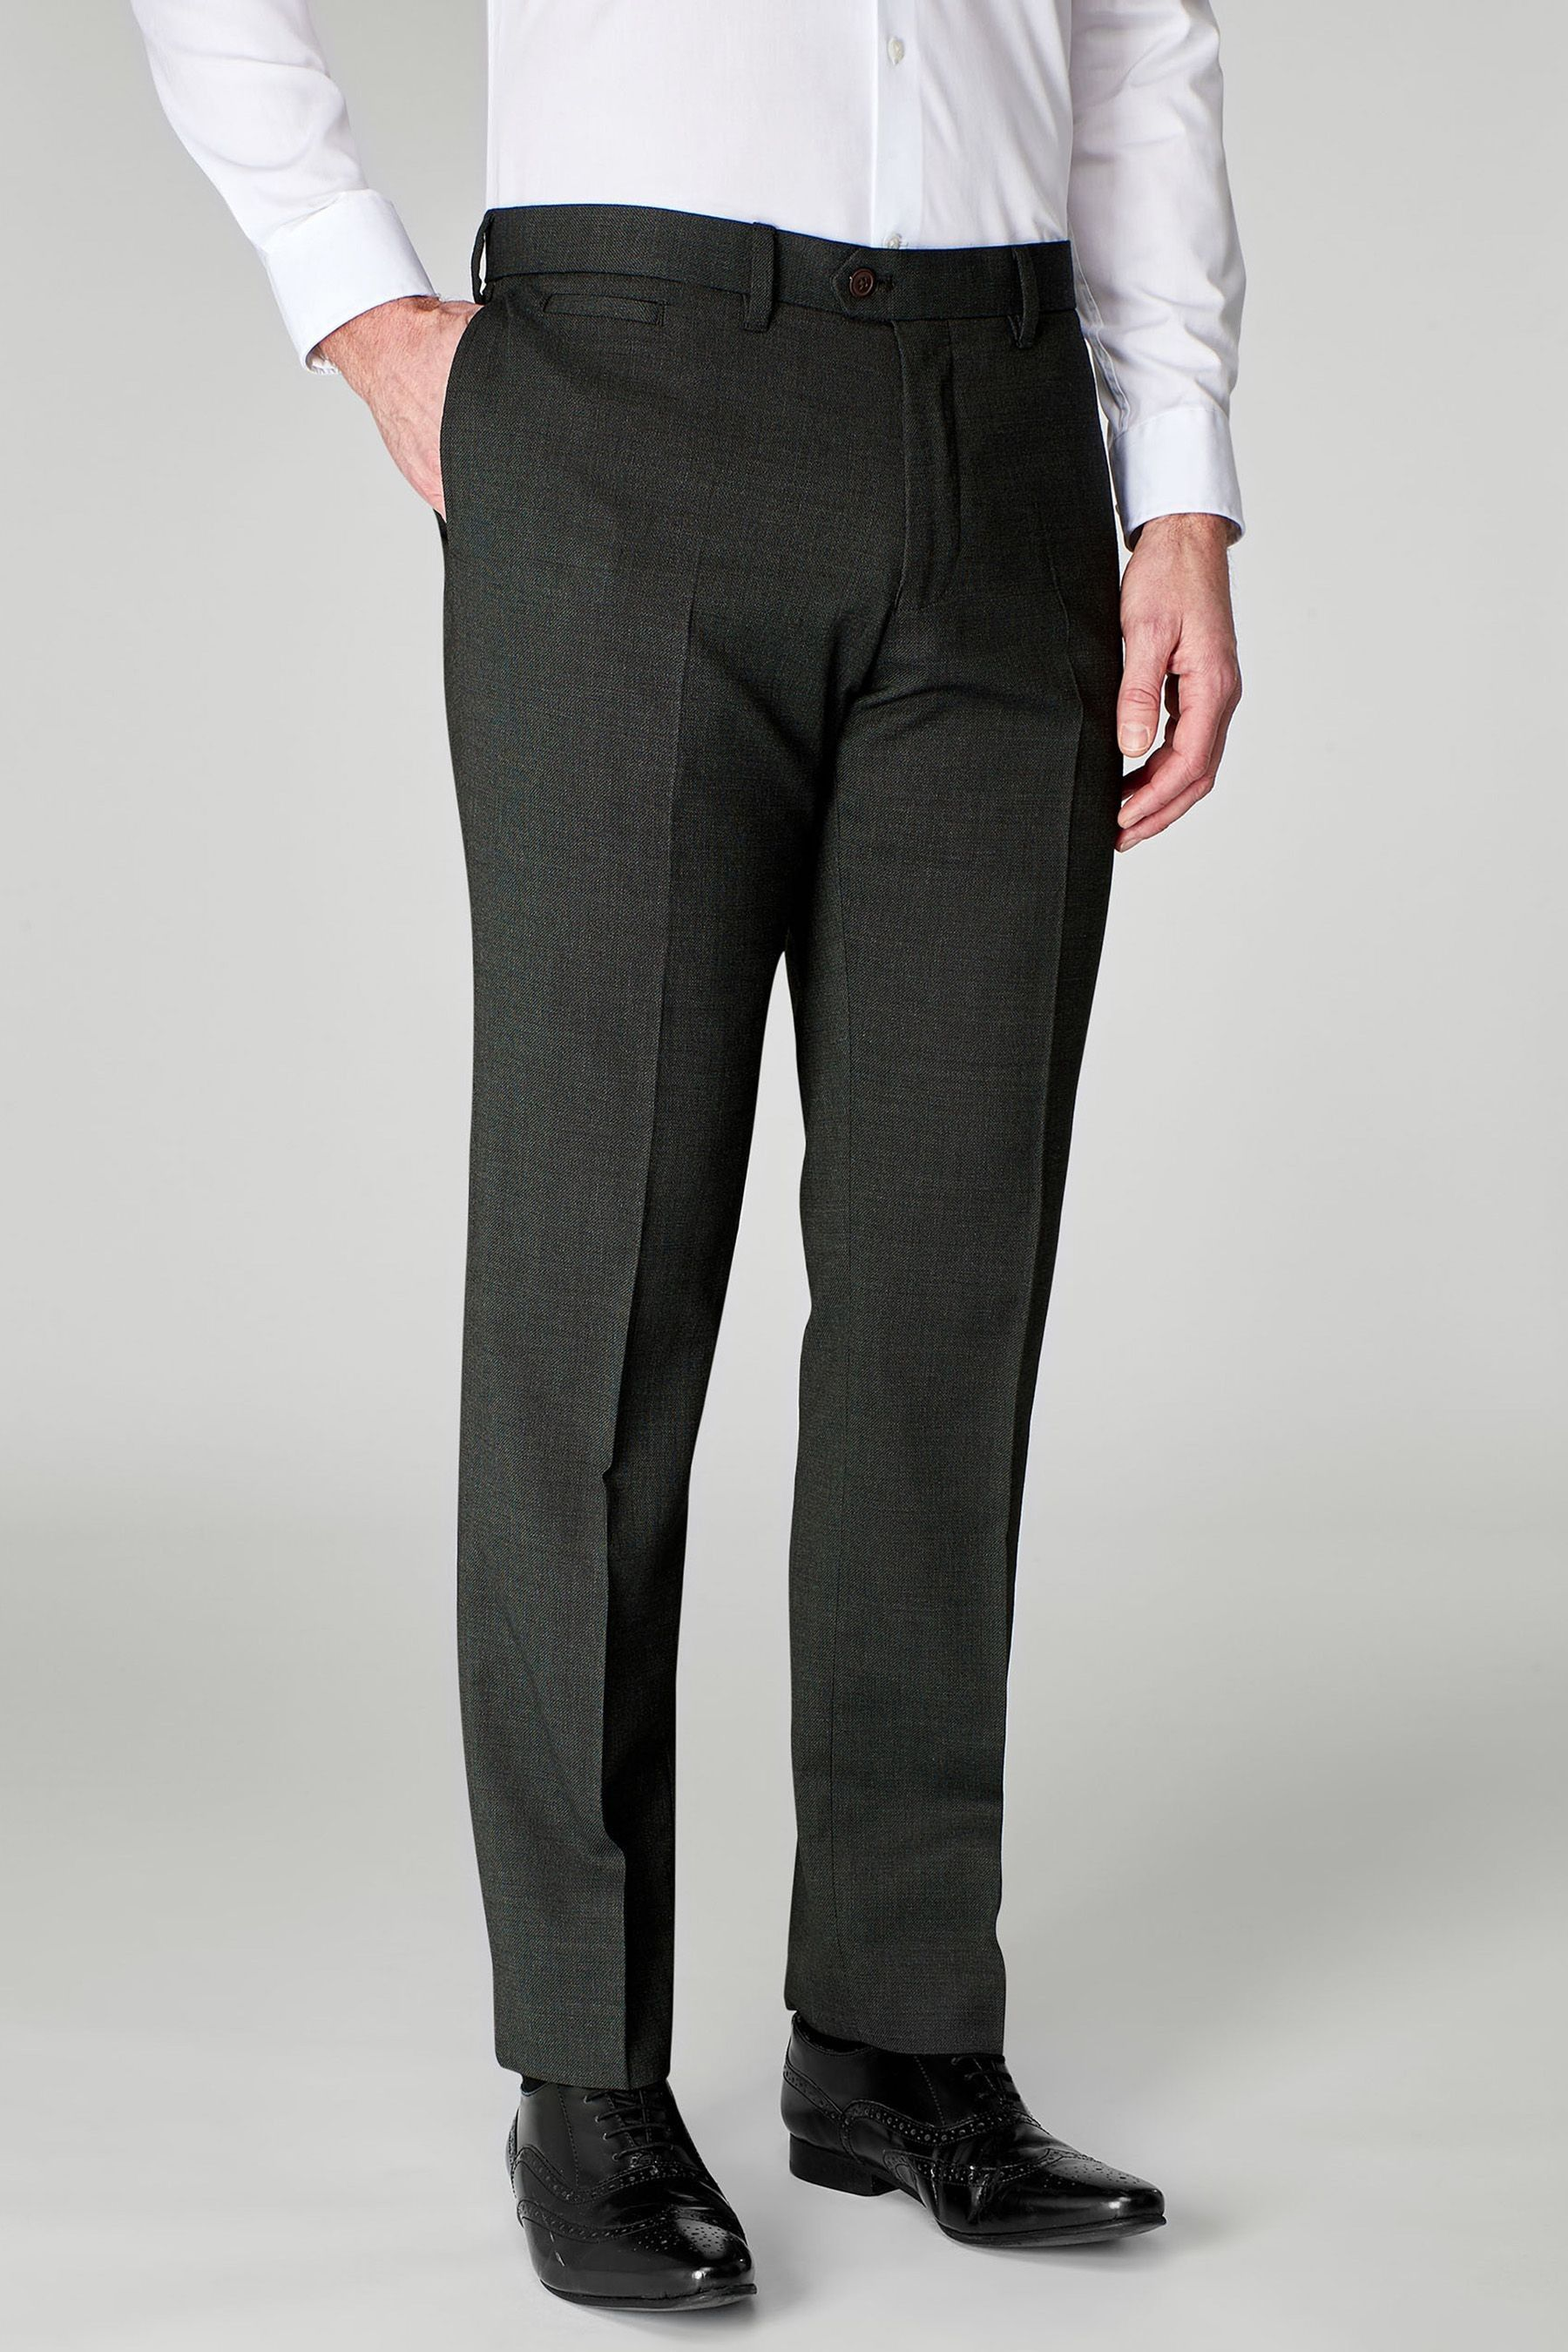 db3707b3d0 Mens Next Charcoal Grey Slim Fit Wool Blend Textured Trousers - Grey ...